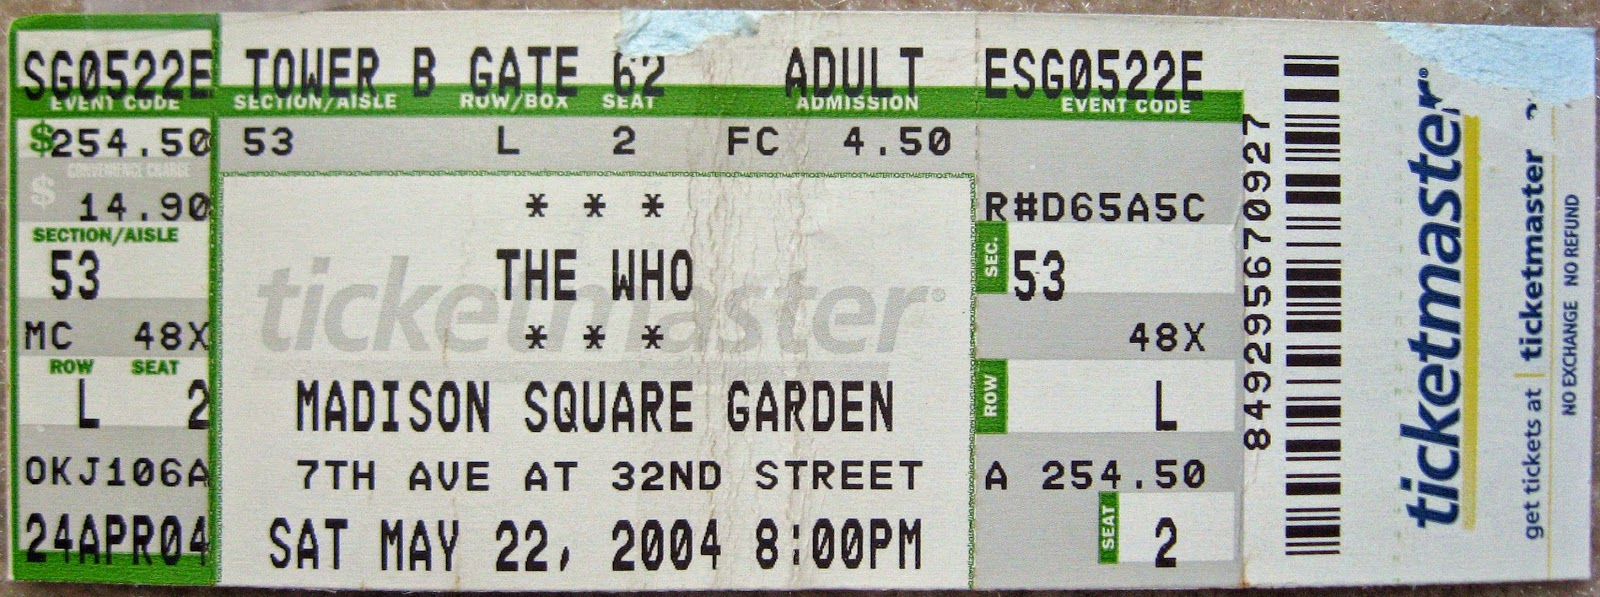 Tommy Mondello's ticket stub from that very show above... awesome!